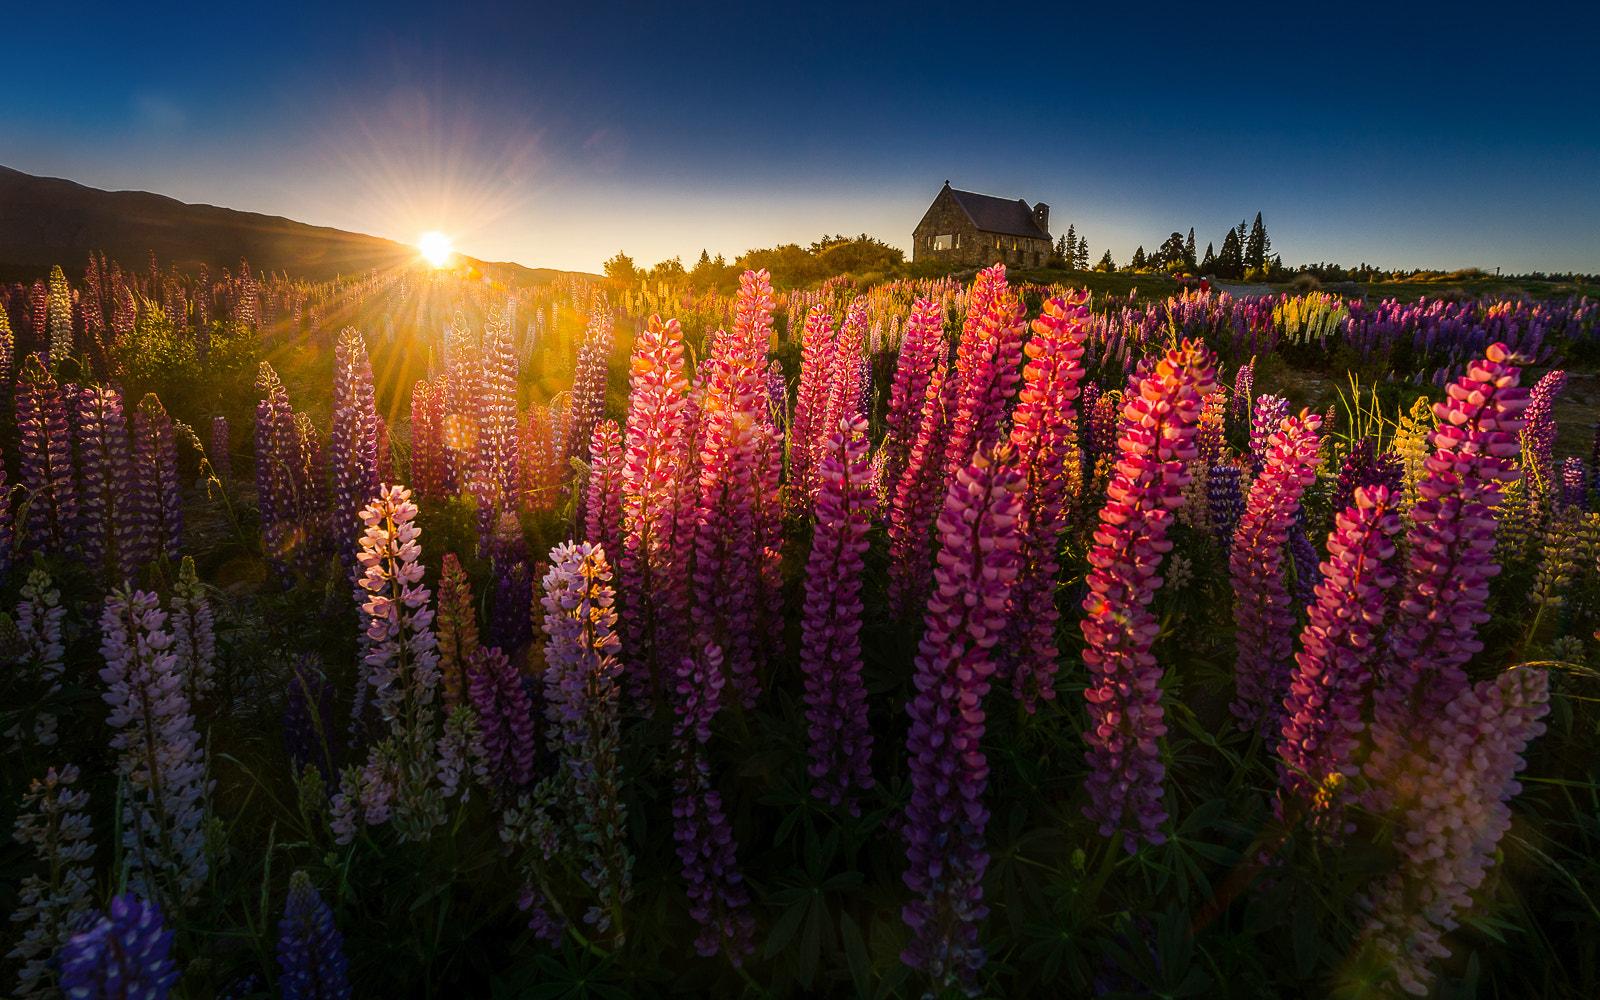 Photograph Good morning NZ by Coolbiere. A. on 500px